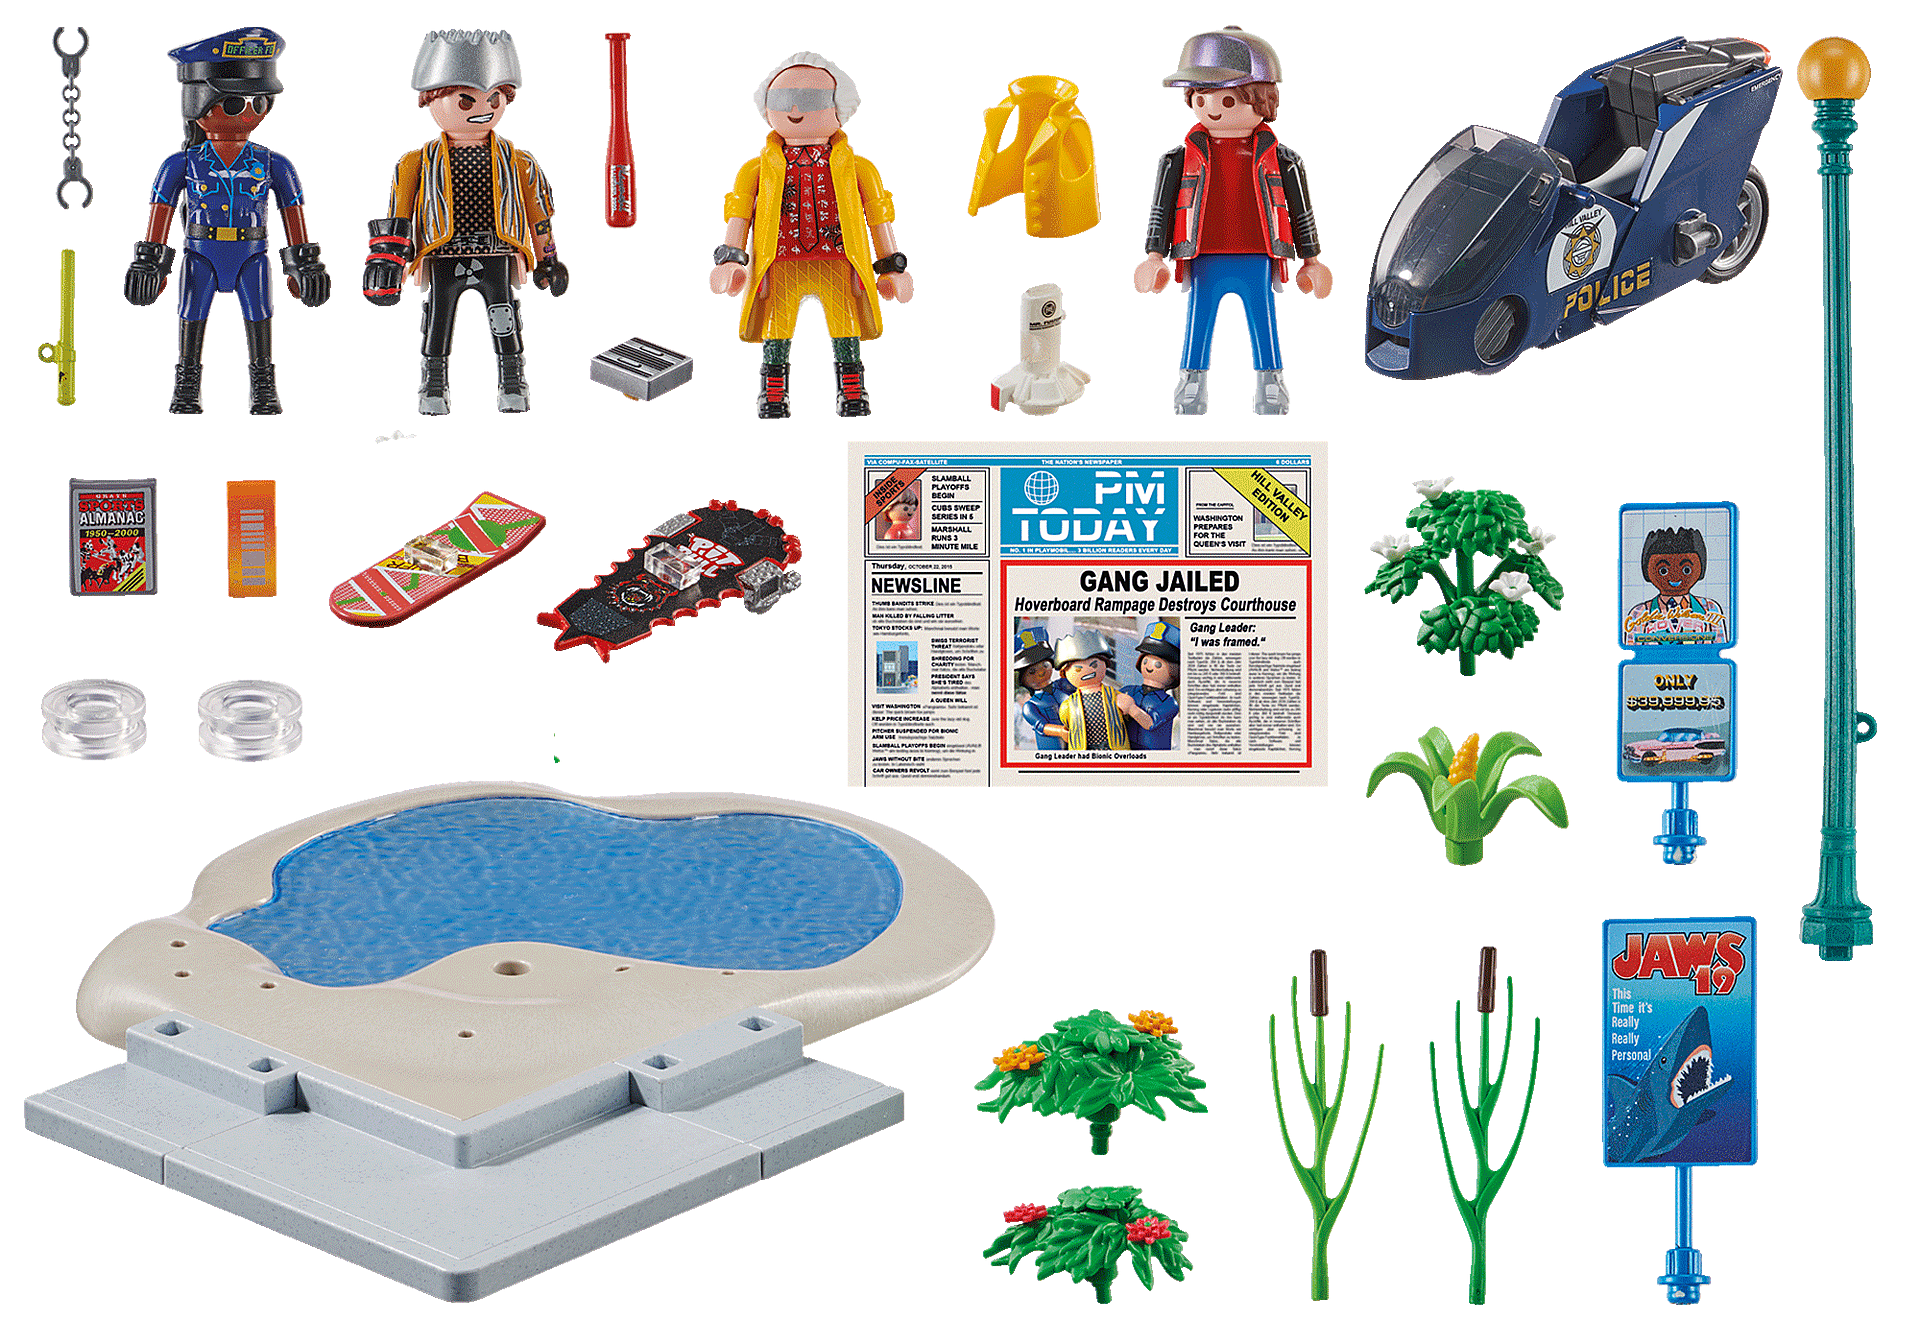 70634 Back to the Future Part II Hoverboard-jagten zoom image3